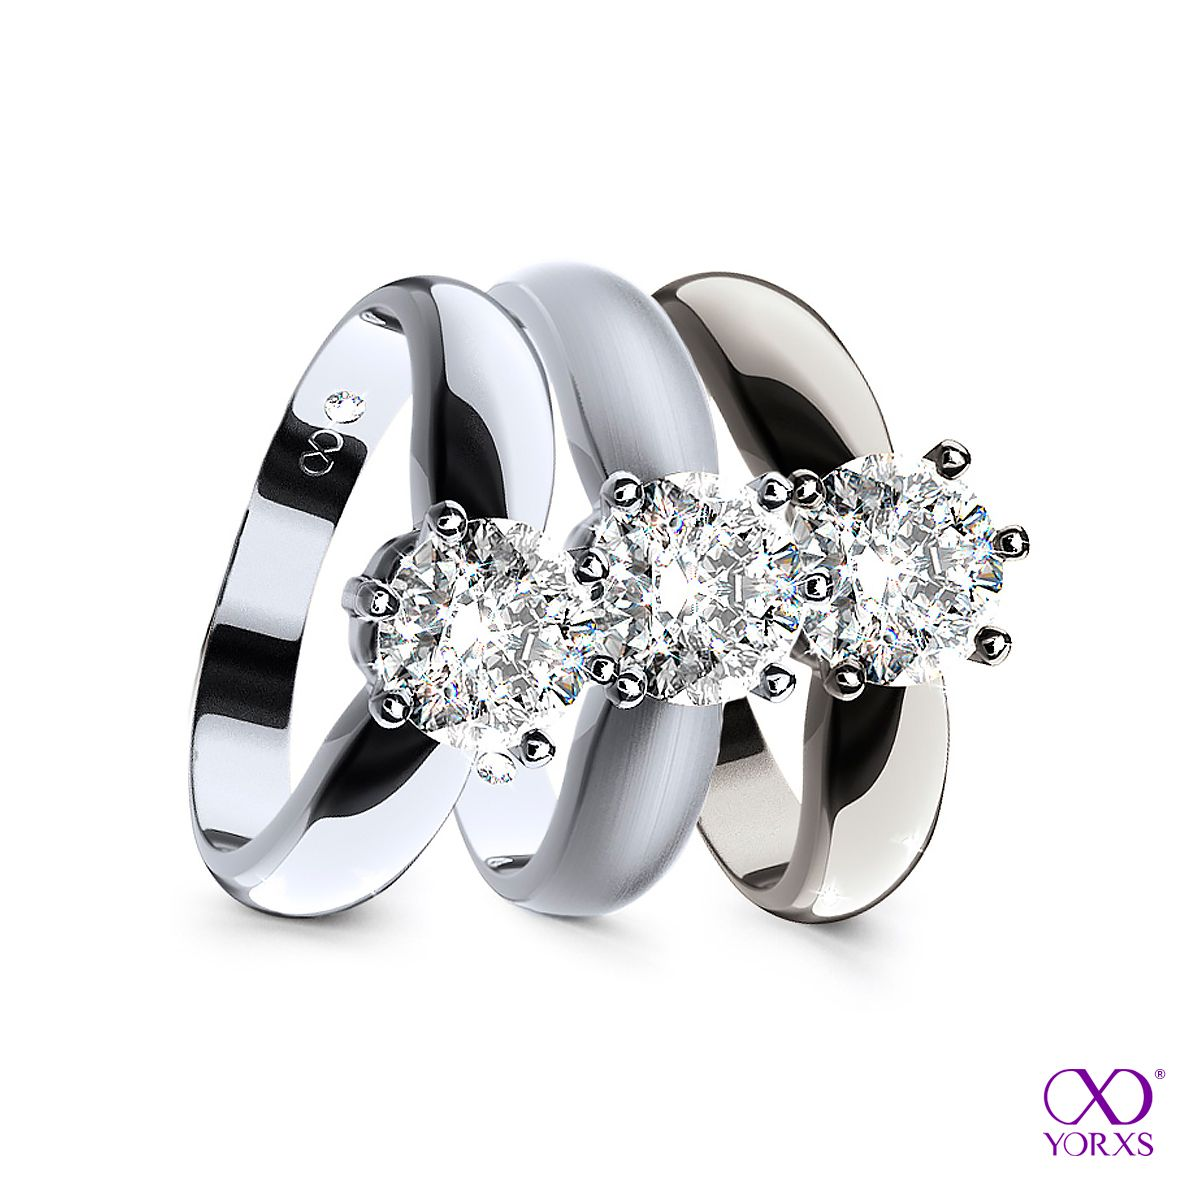 One ring in white gold - three different surfaces #Yorxs #Diamantring